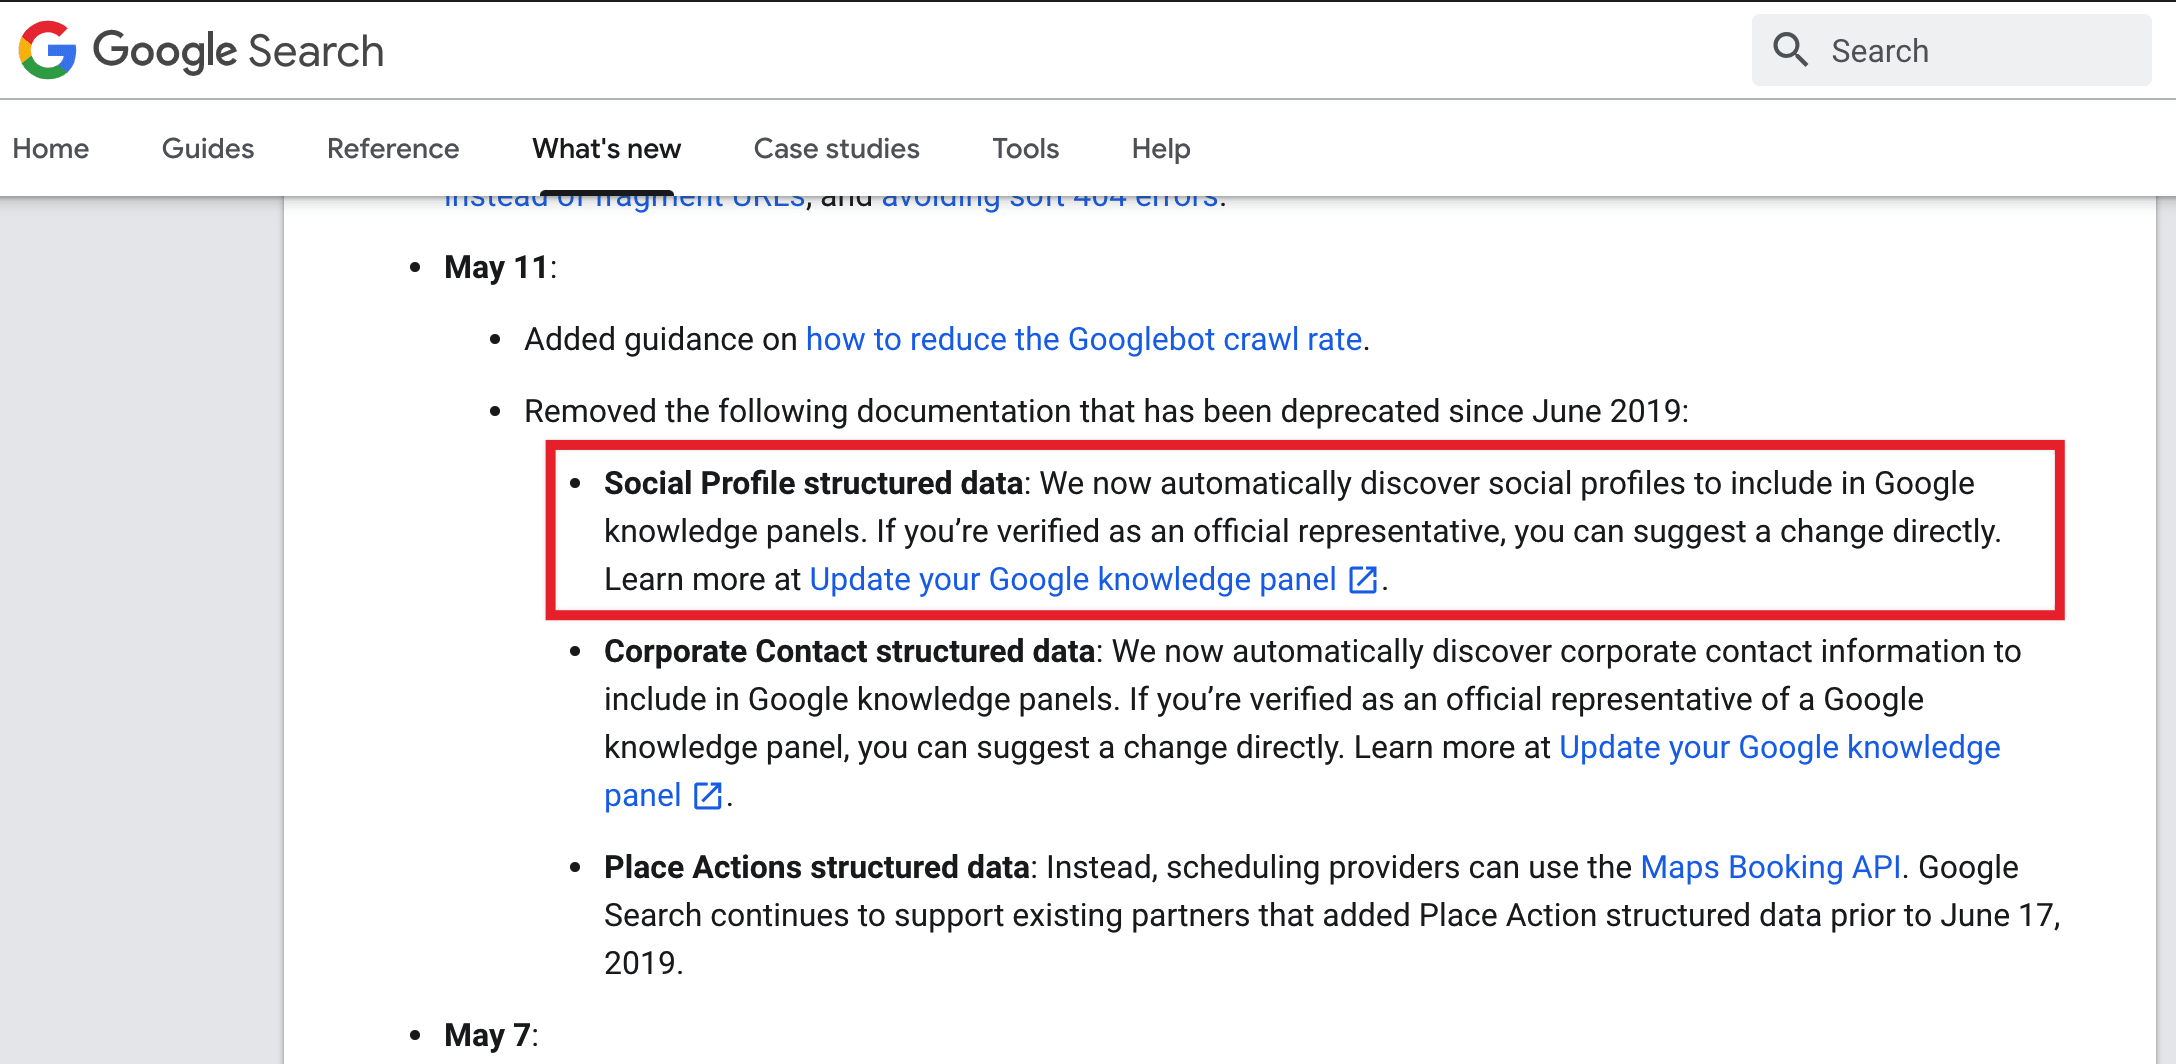 google's statement from the above link